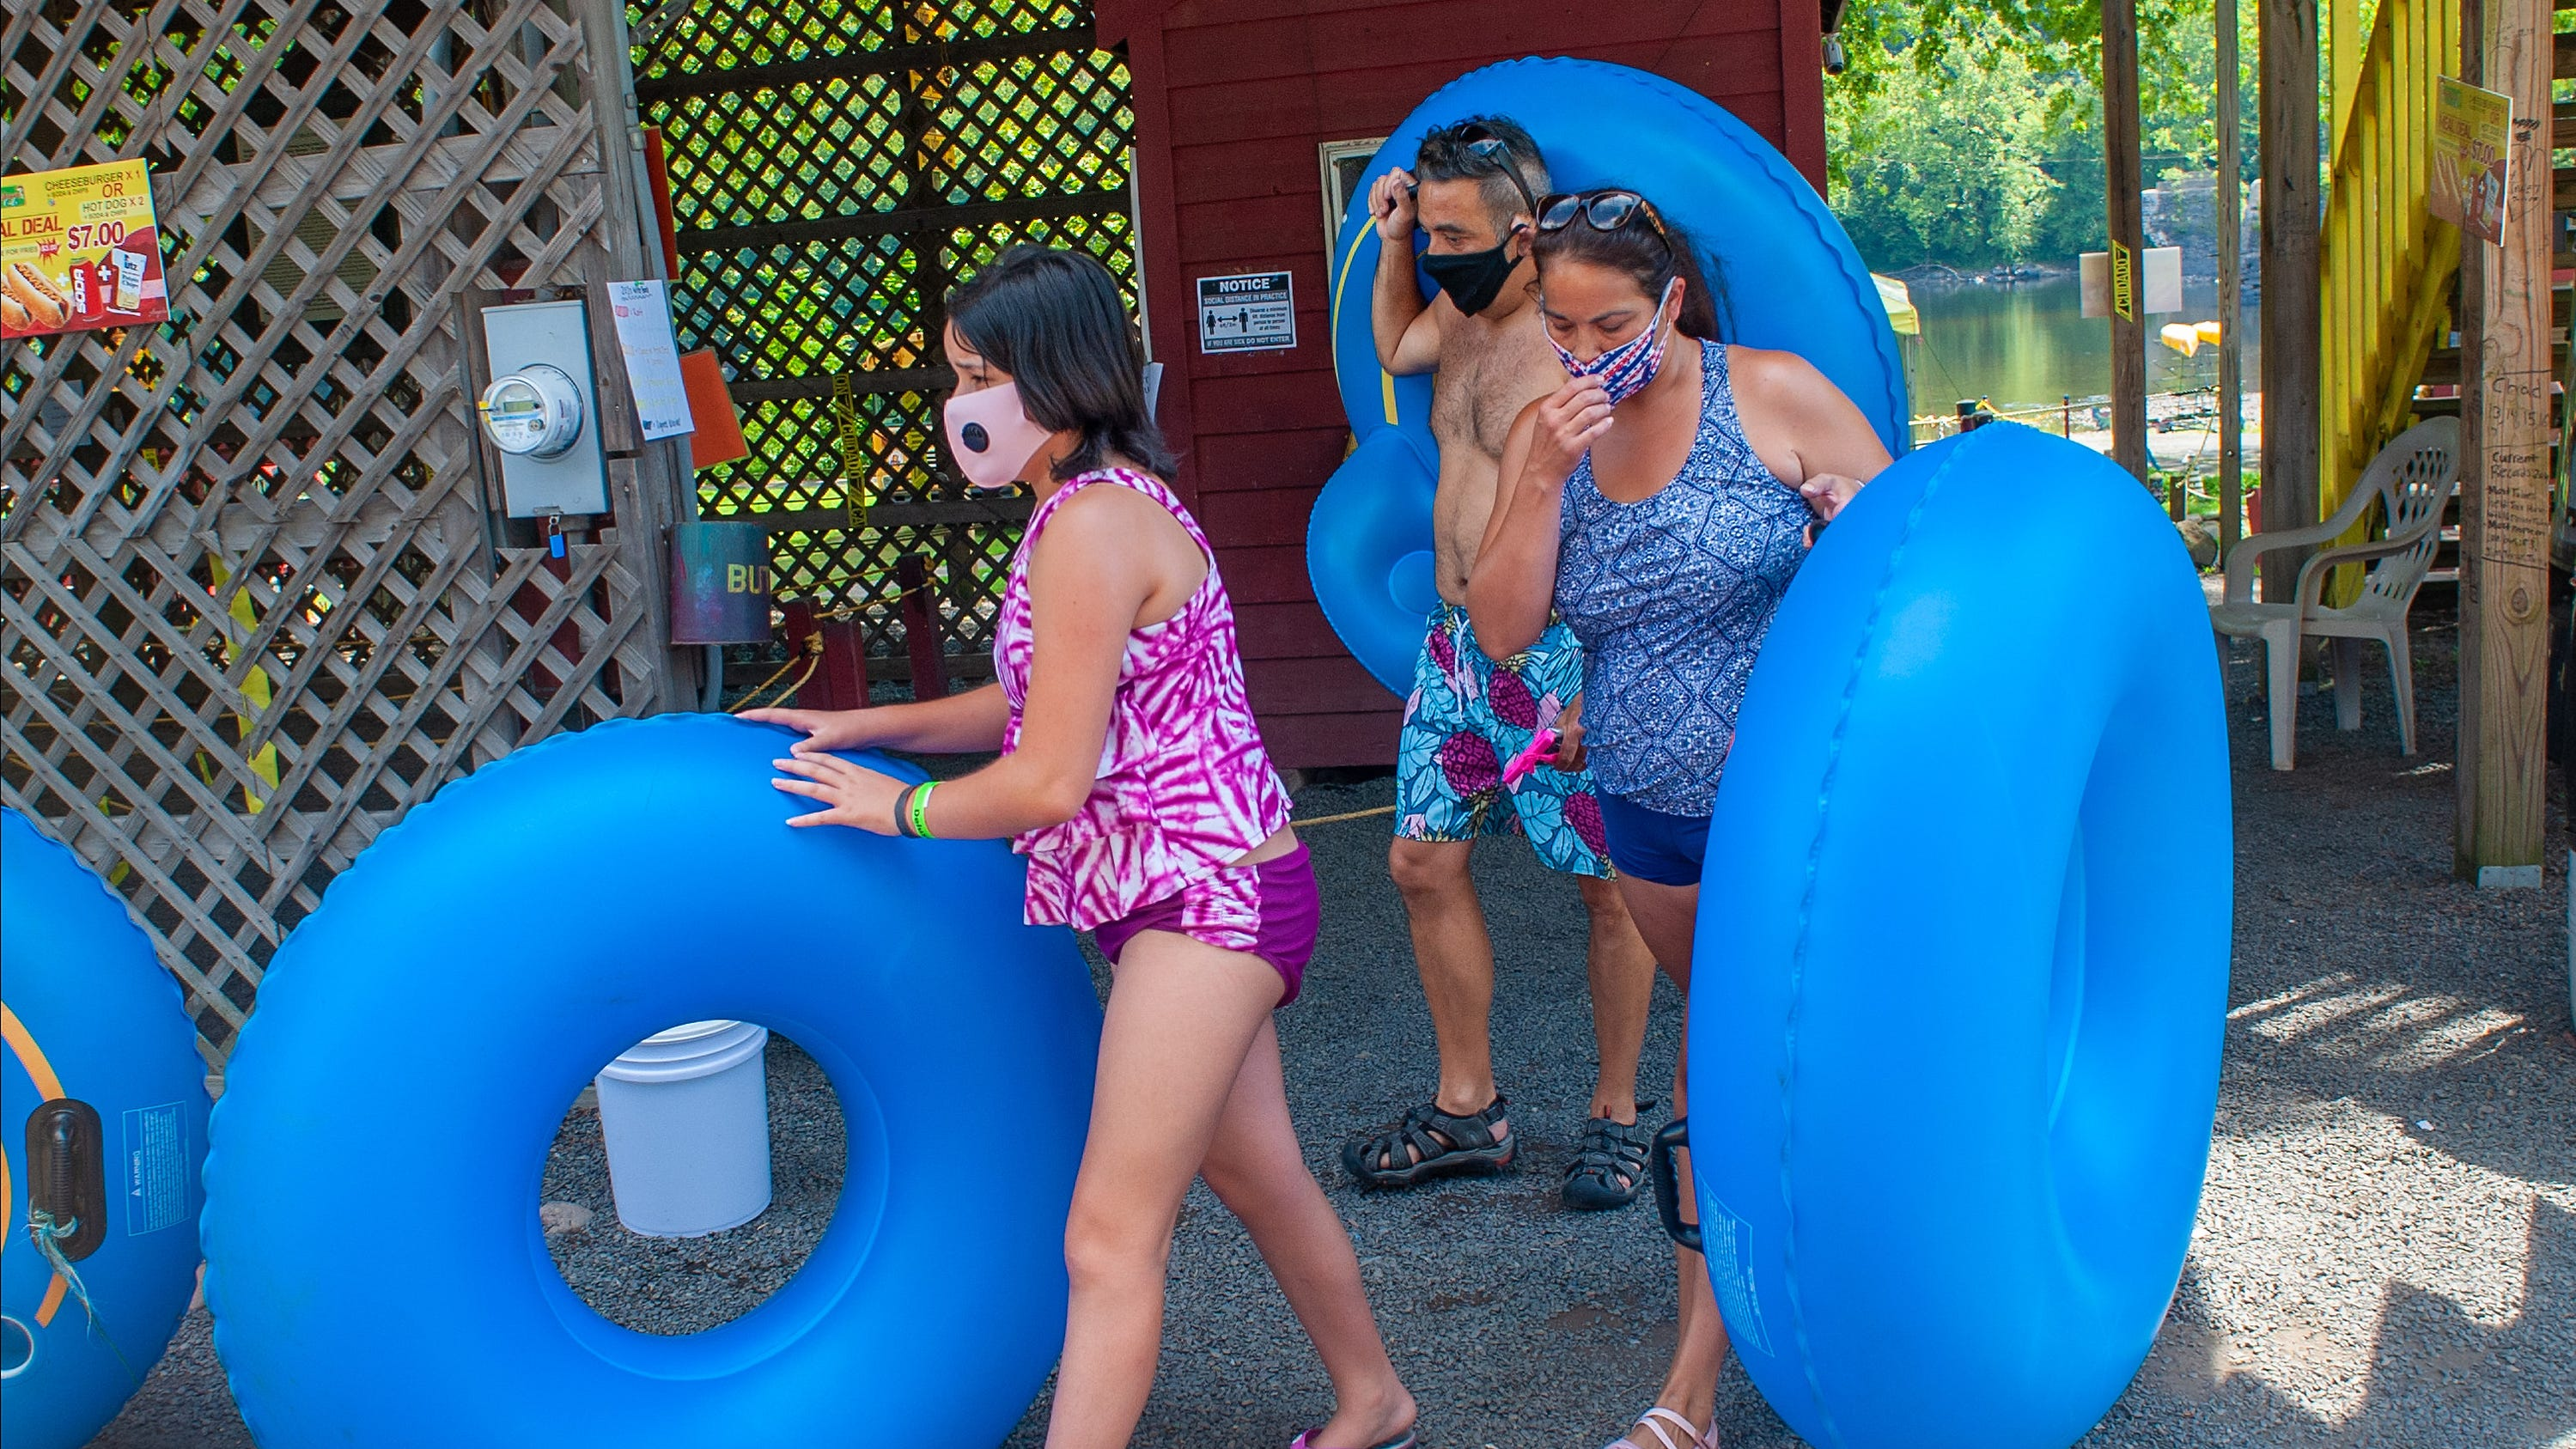 From left, Katie Caliguire, her dad Vince Caliguire and mom Chrissy Caliguire of Delanco, New Jersey carry their tubes to the bus during a day of tubing on the Delaware River Thursday, July 30, 2020 at Bucks County River Country in Point Pleasant, Pennsylvania. Usually opening in May, Bucks County River Country didn't open until June due to COVID-19 concerns. Since they opened for the season the weather has been consistently in the 90's and they have been very busy, having one of their best weekends ever only a few weeks ago.